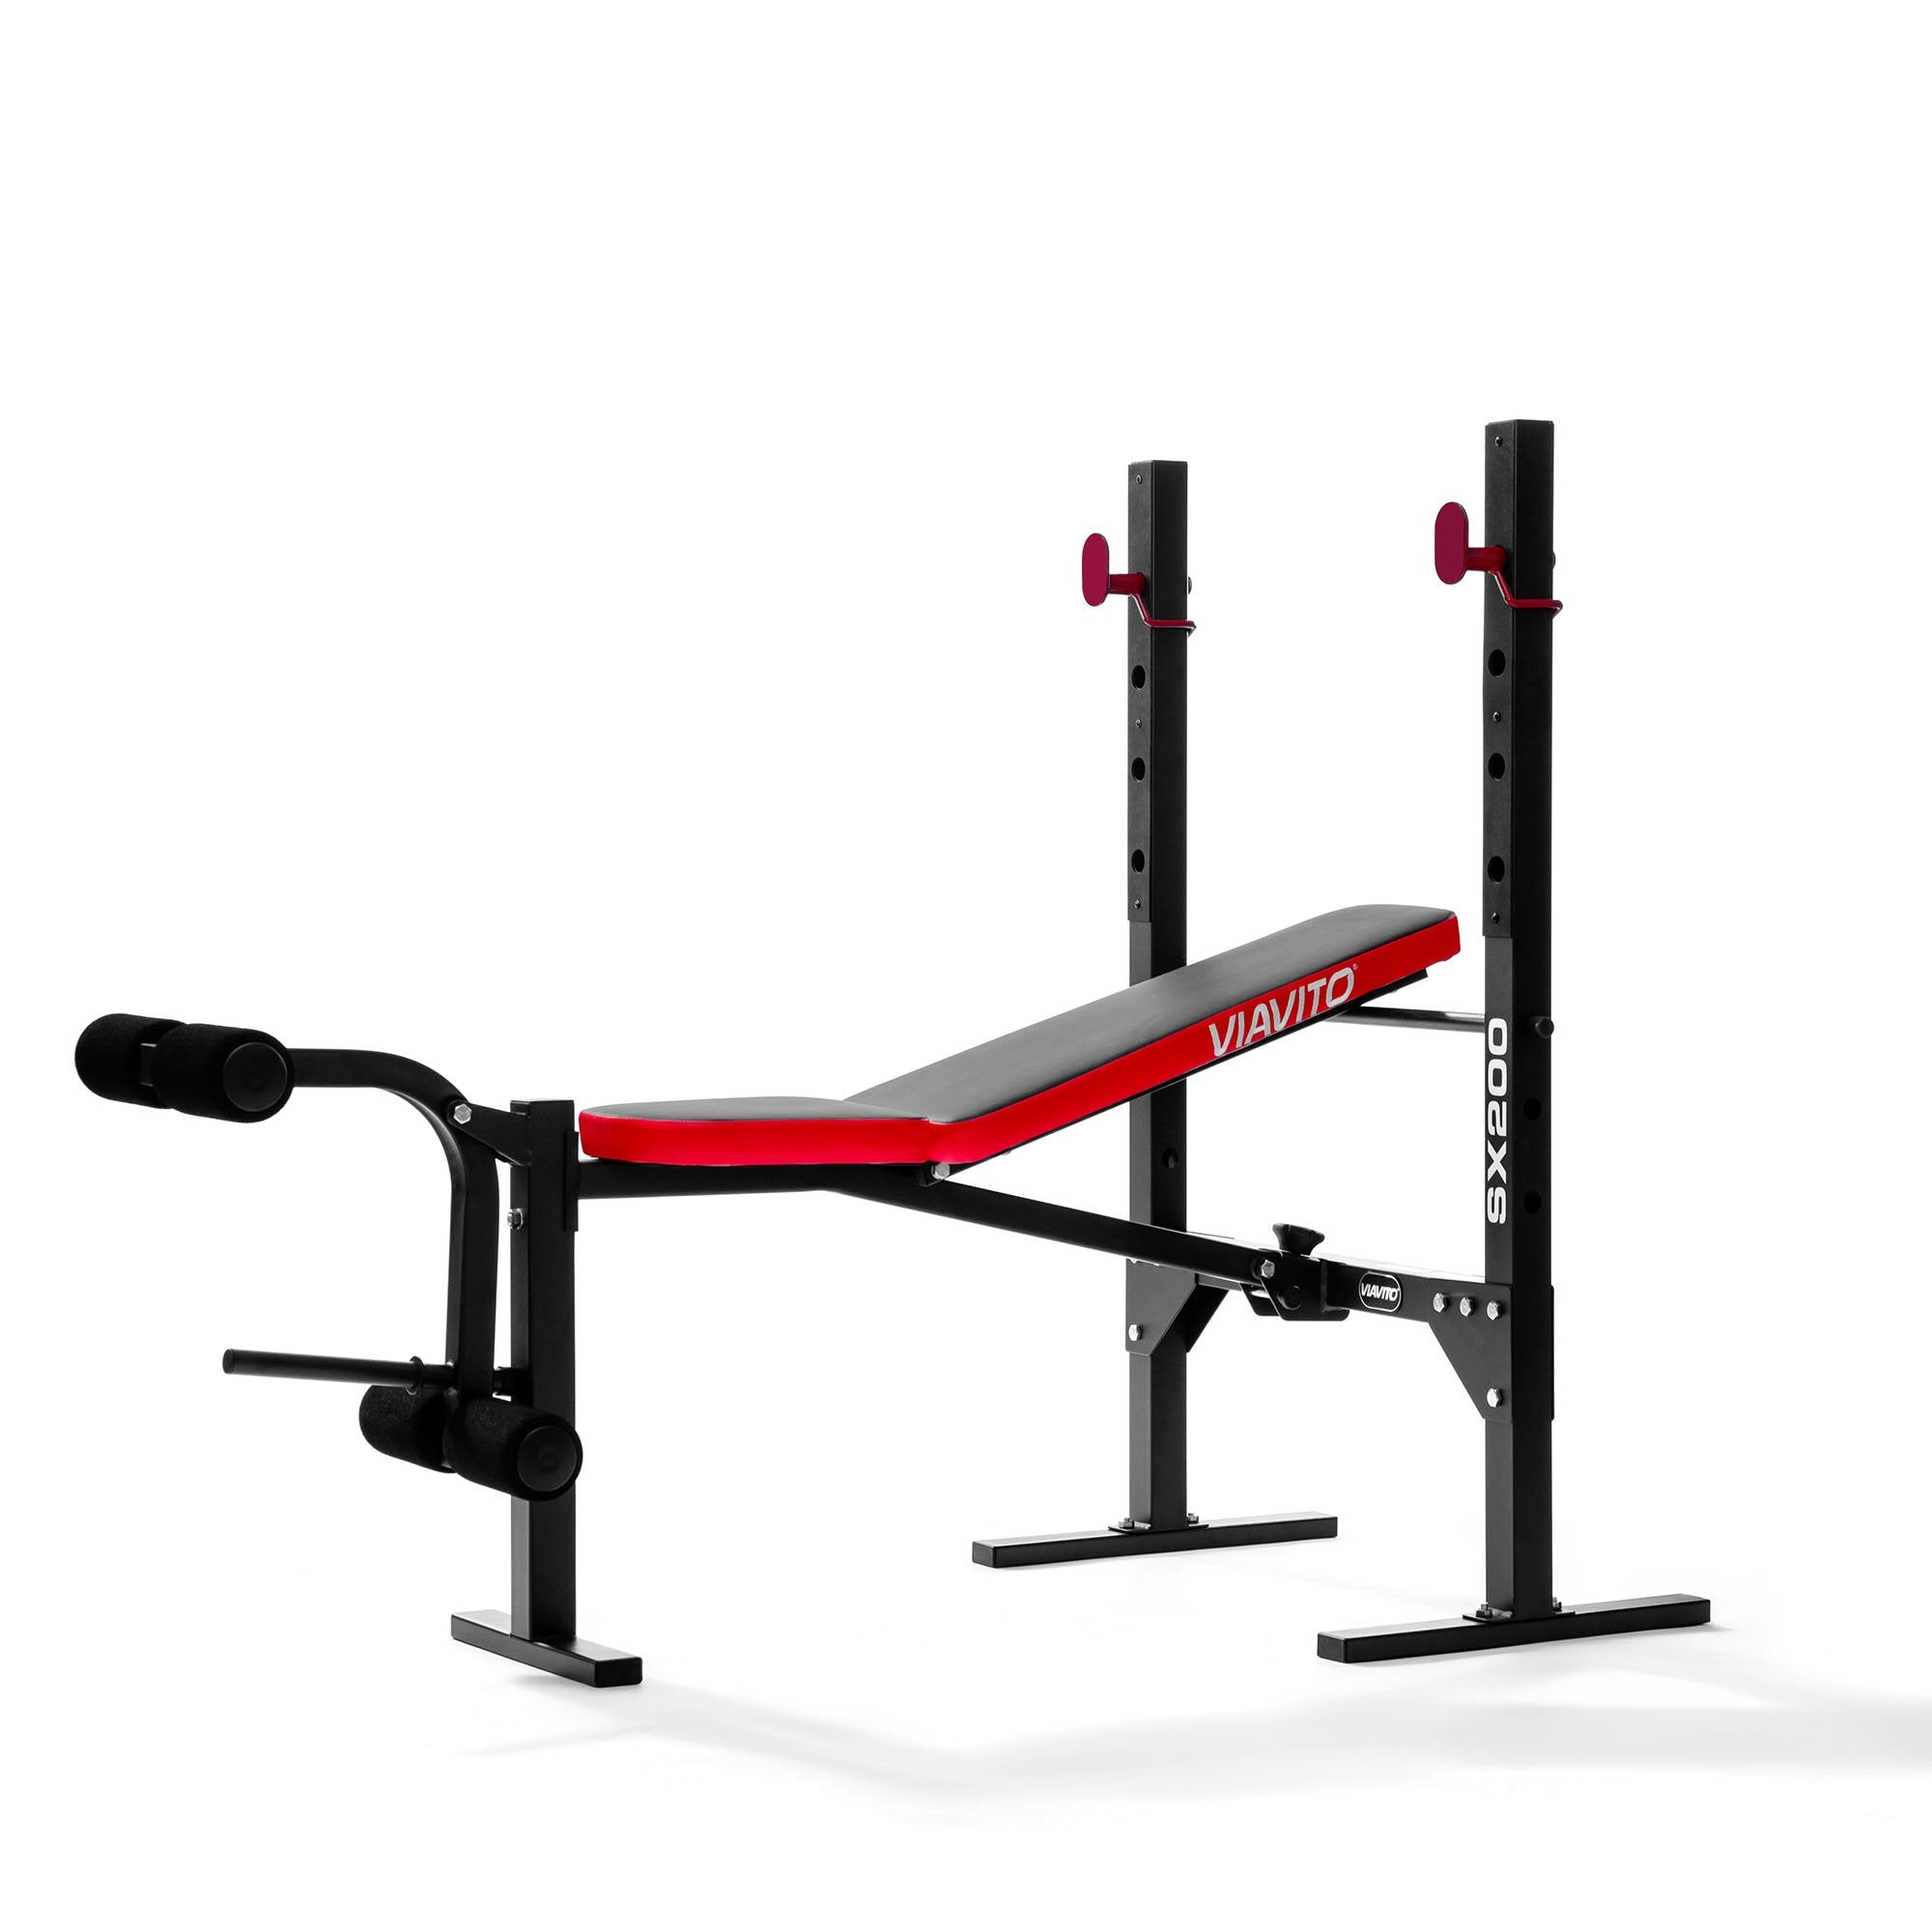 Image of Viavito SX200 Folding Barbell Weight Bench